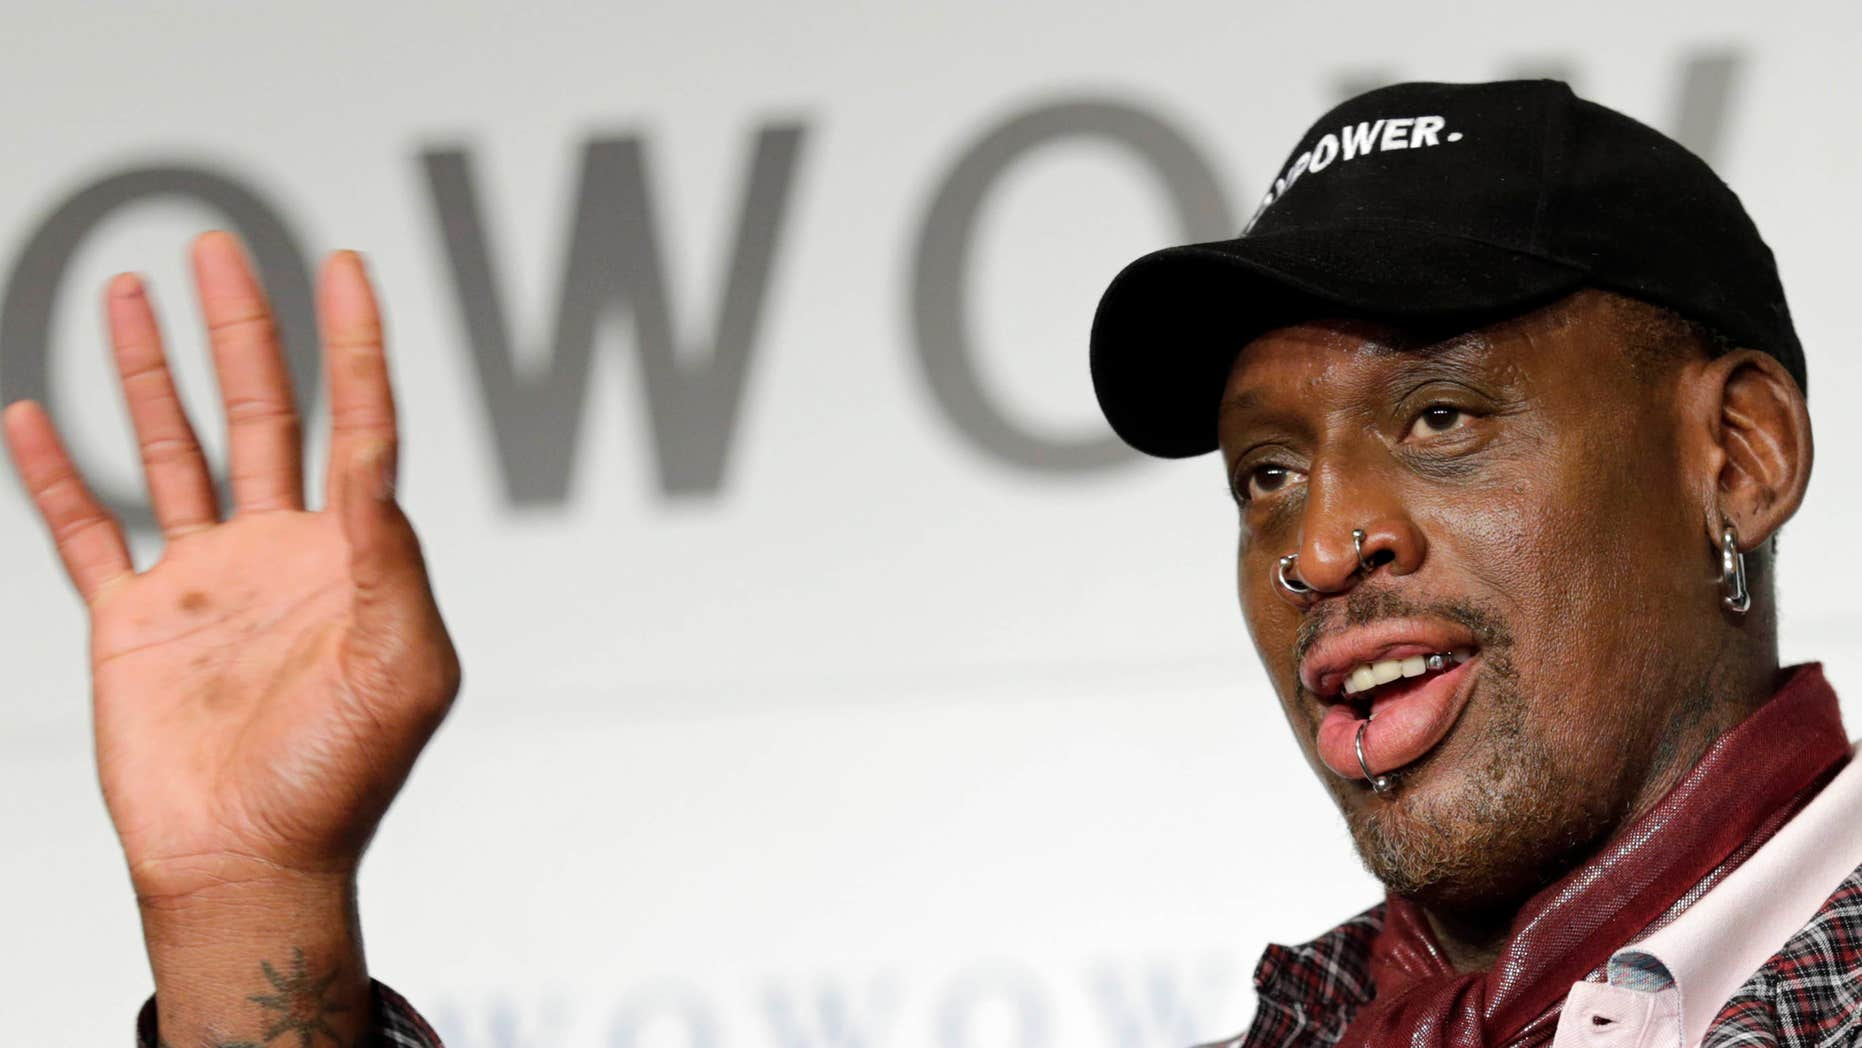 FILE - In this Oct. 25, 2013, file photo, former basketball player Dennis Rodman waves during a news conference in Tokyo.